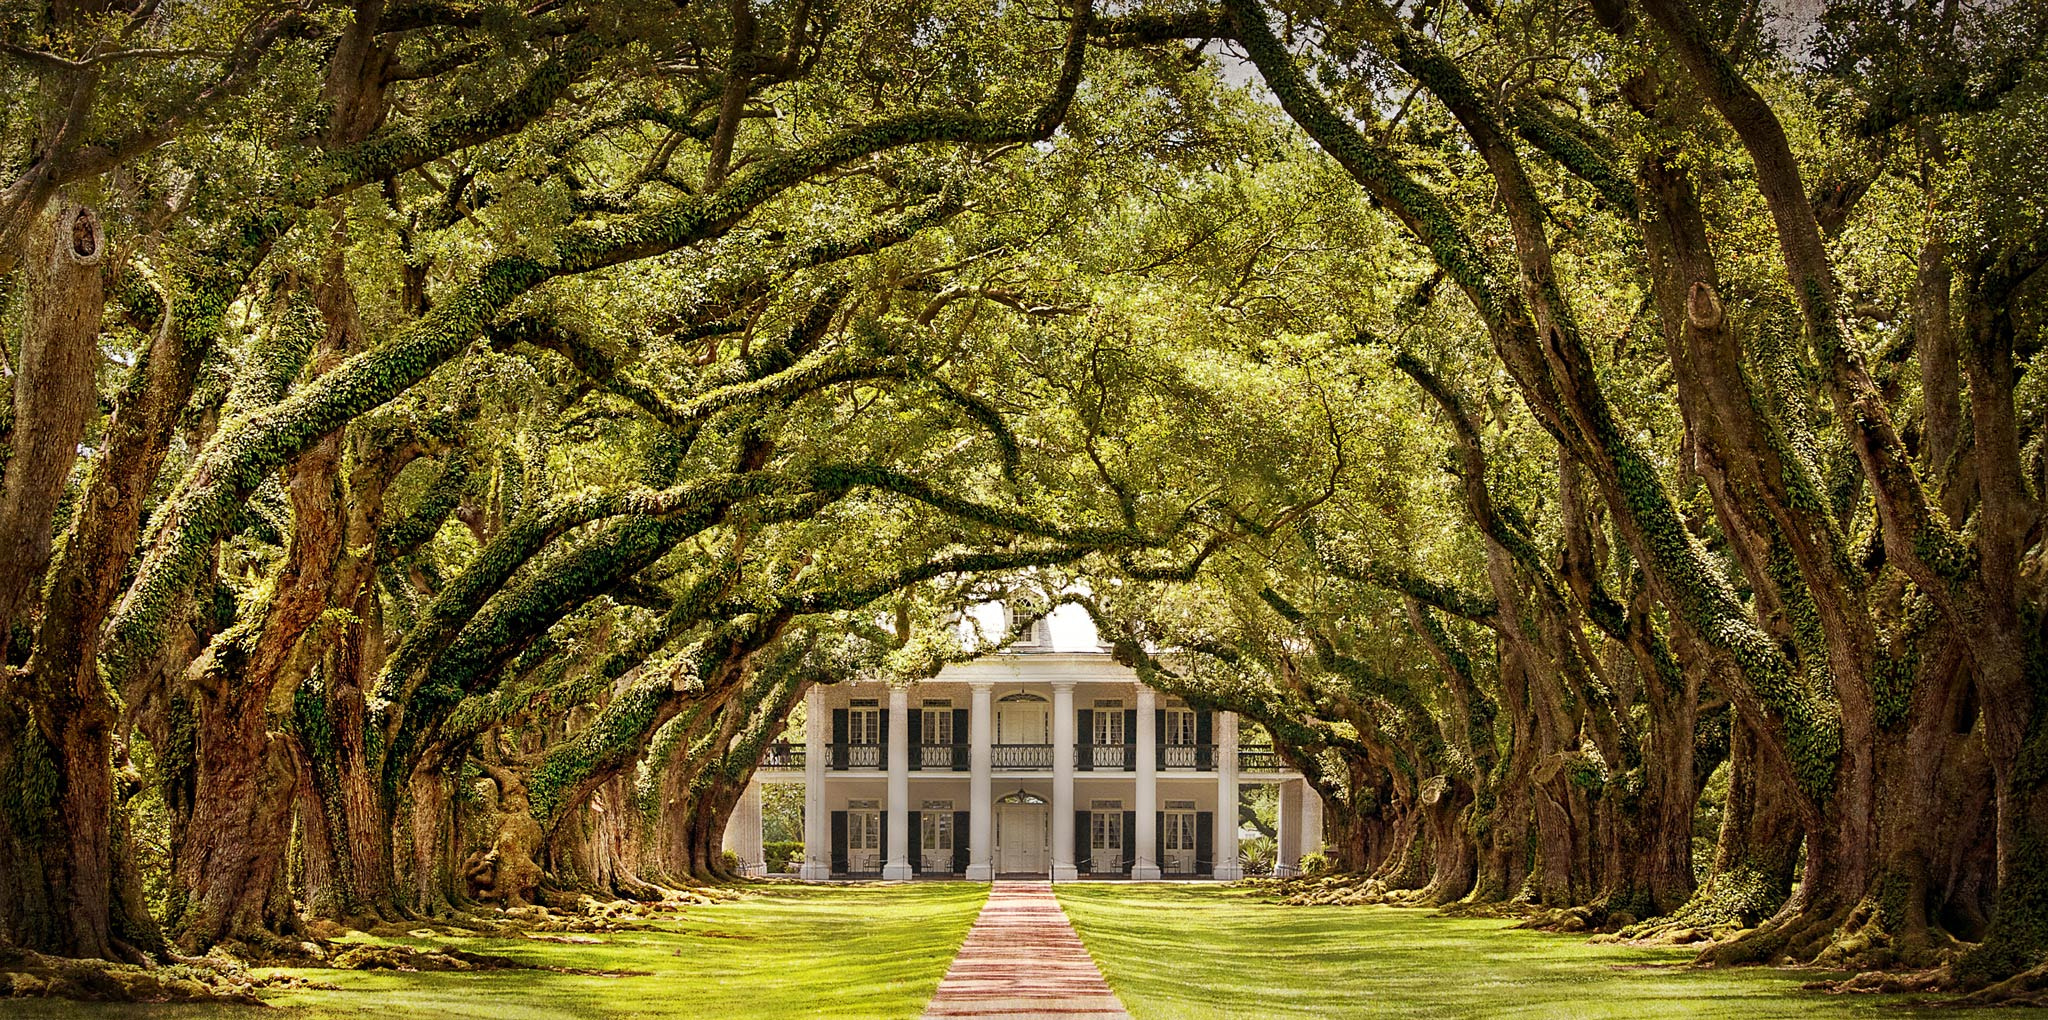 Photograph Oak Alley Plantation by Dirk Seifert on 500px